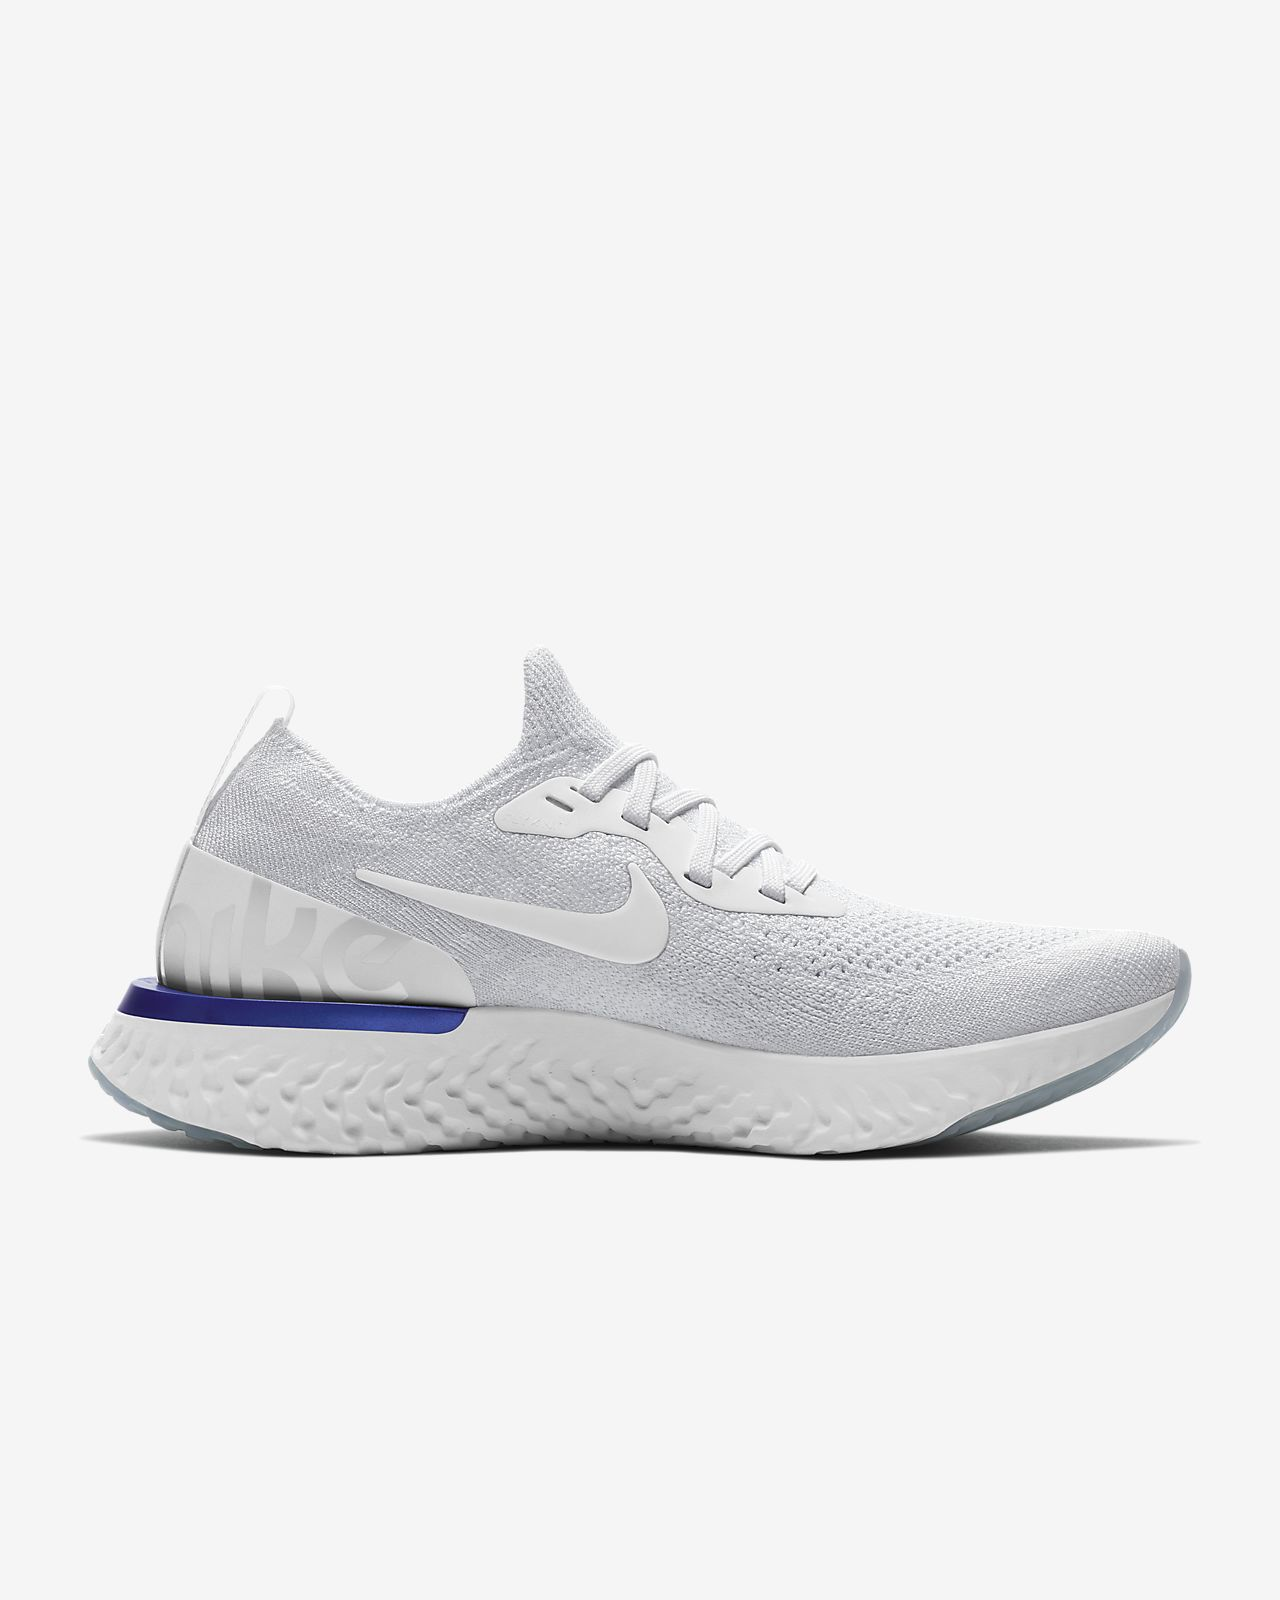 promo code d14a8 7ad14 ... sweden nike running epic donna scarpe donna react flyknit d5a7xtxwqf  40d63 bc810